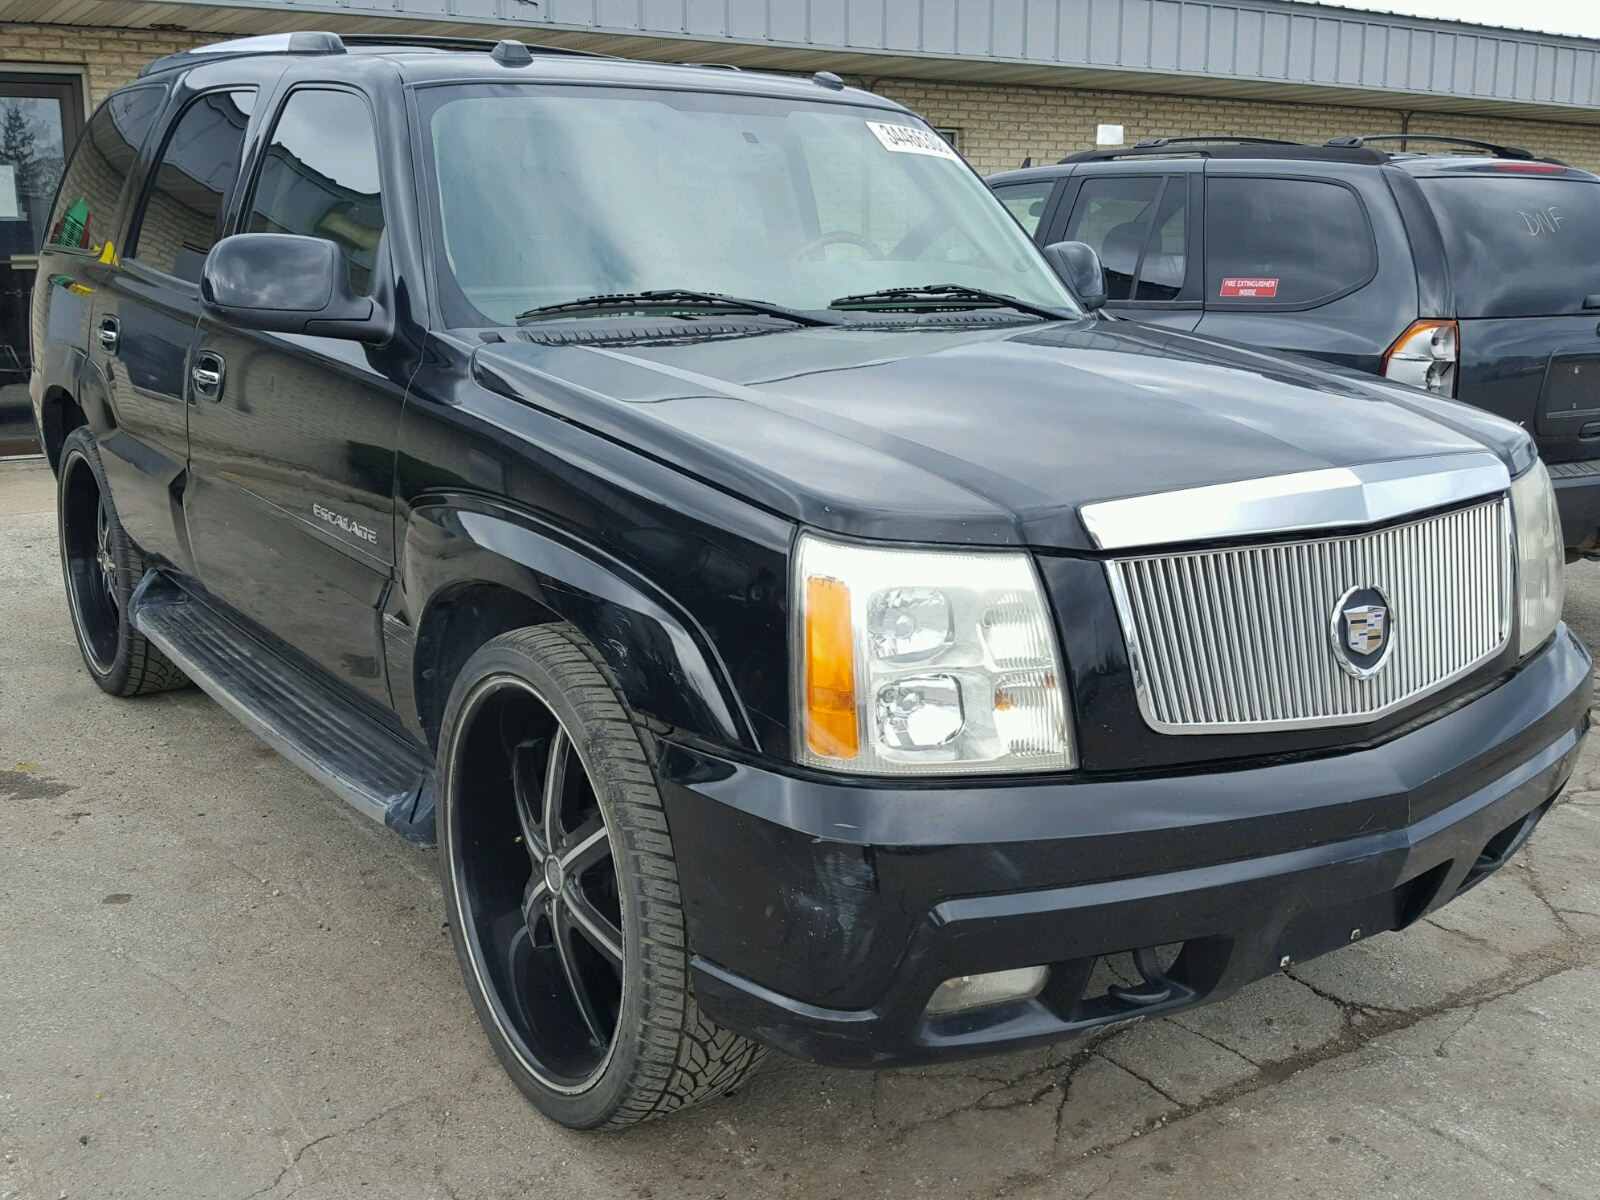 the wikia wiki by escalade fandom hot latest cb wheels versions powered cadillac